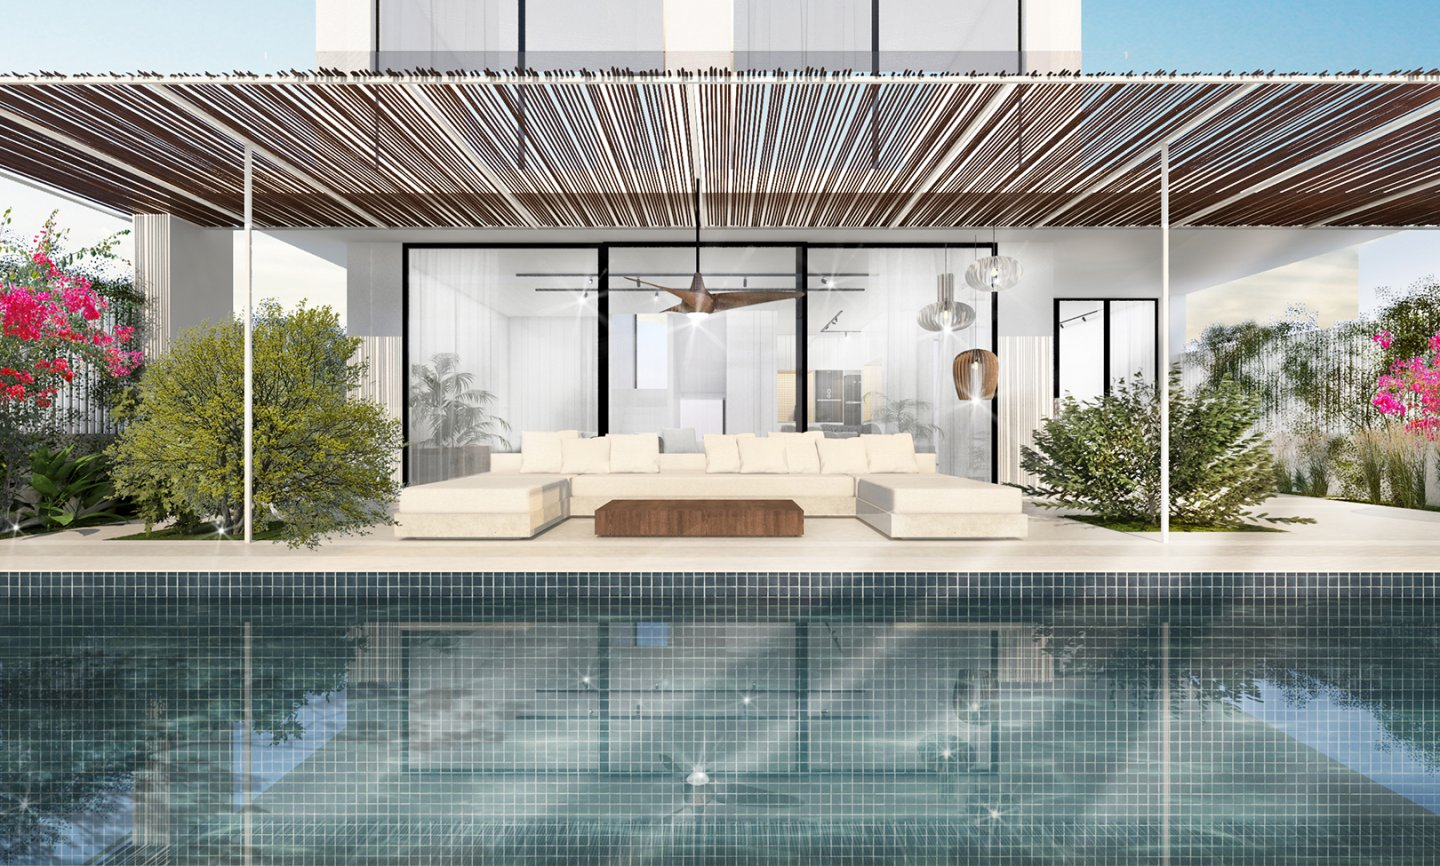 K.S Villa cyprus - project overview image